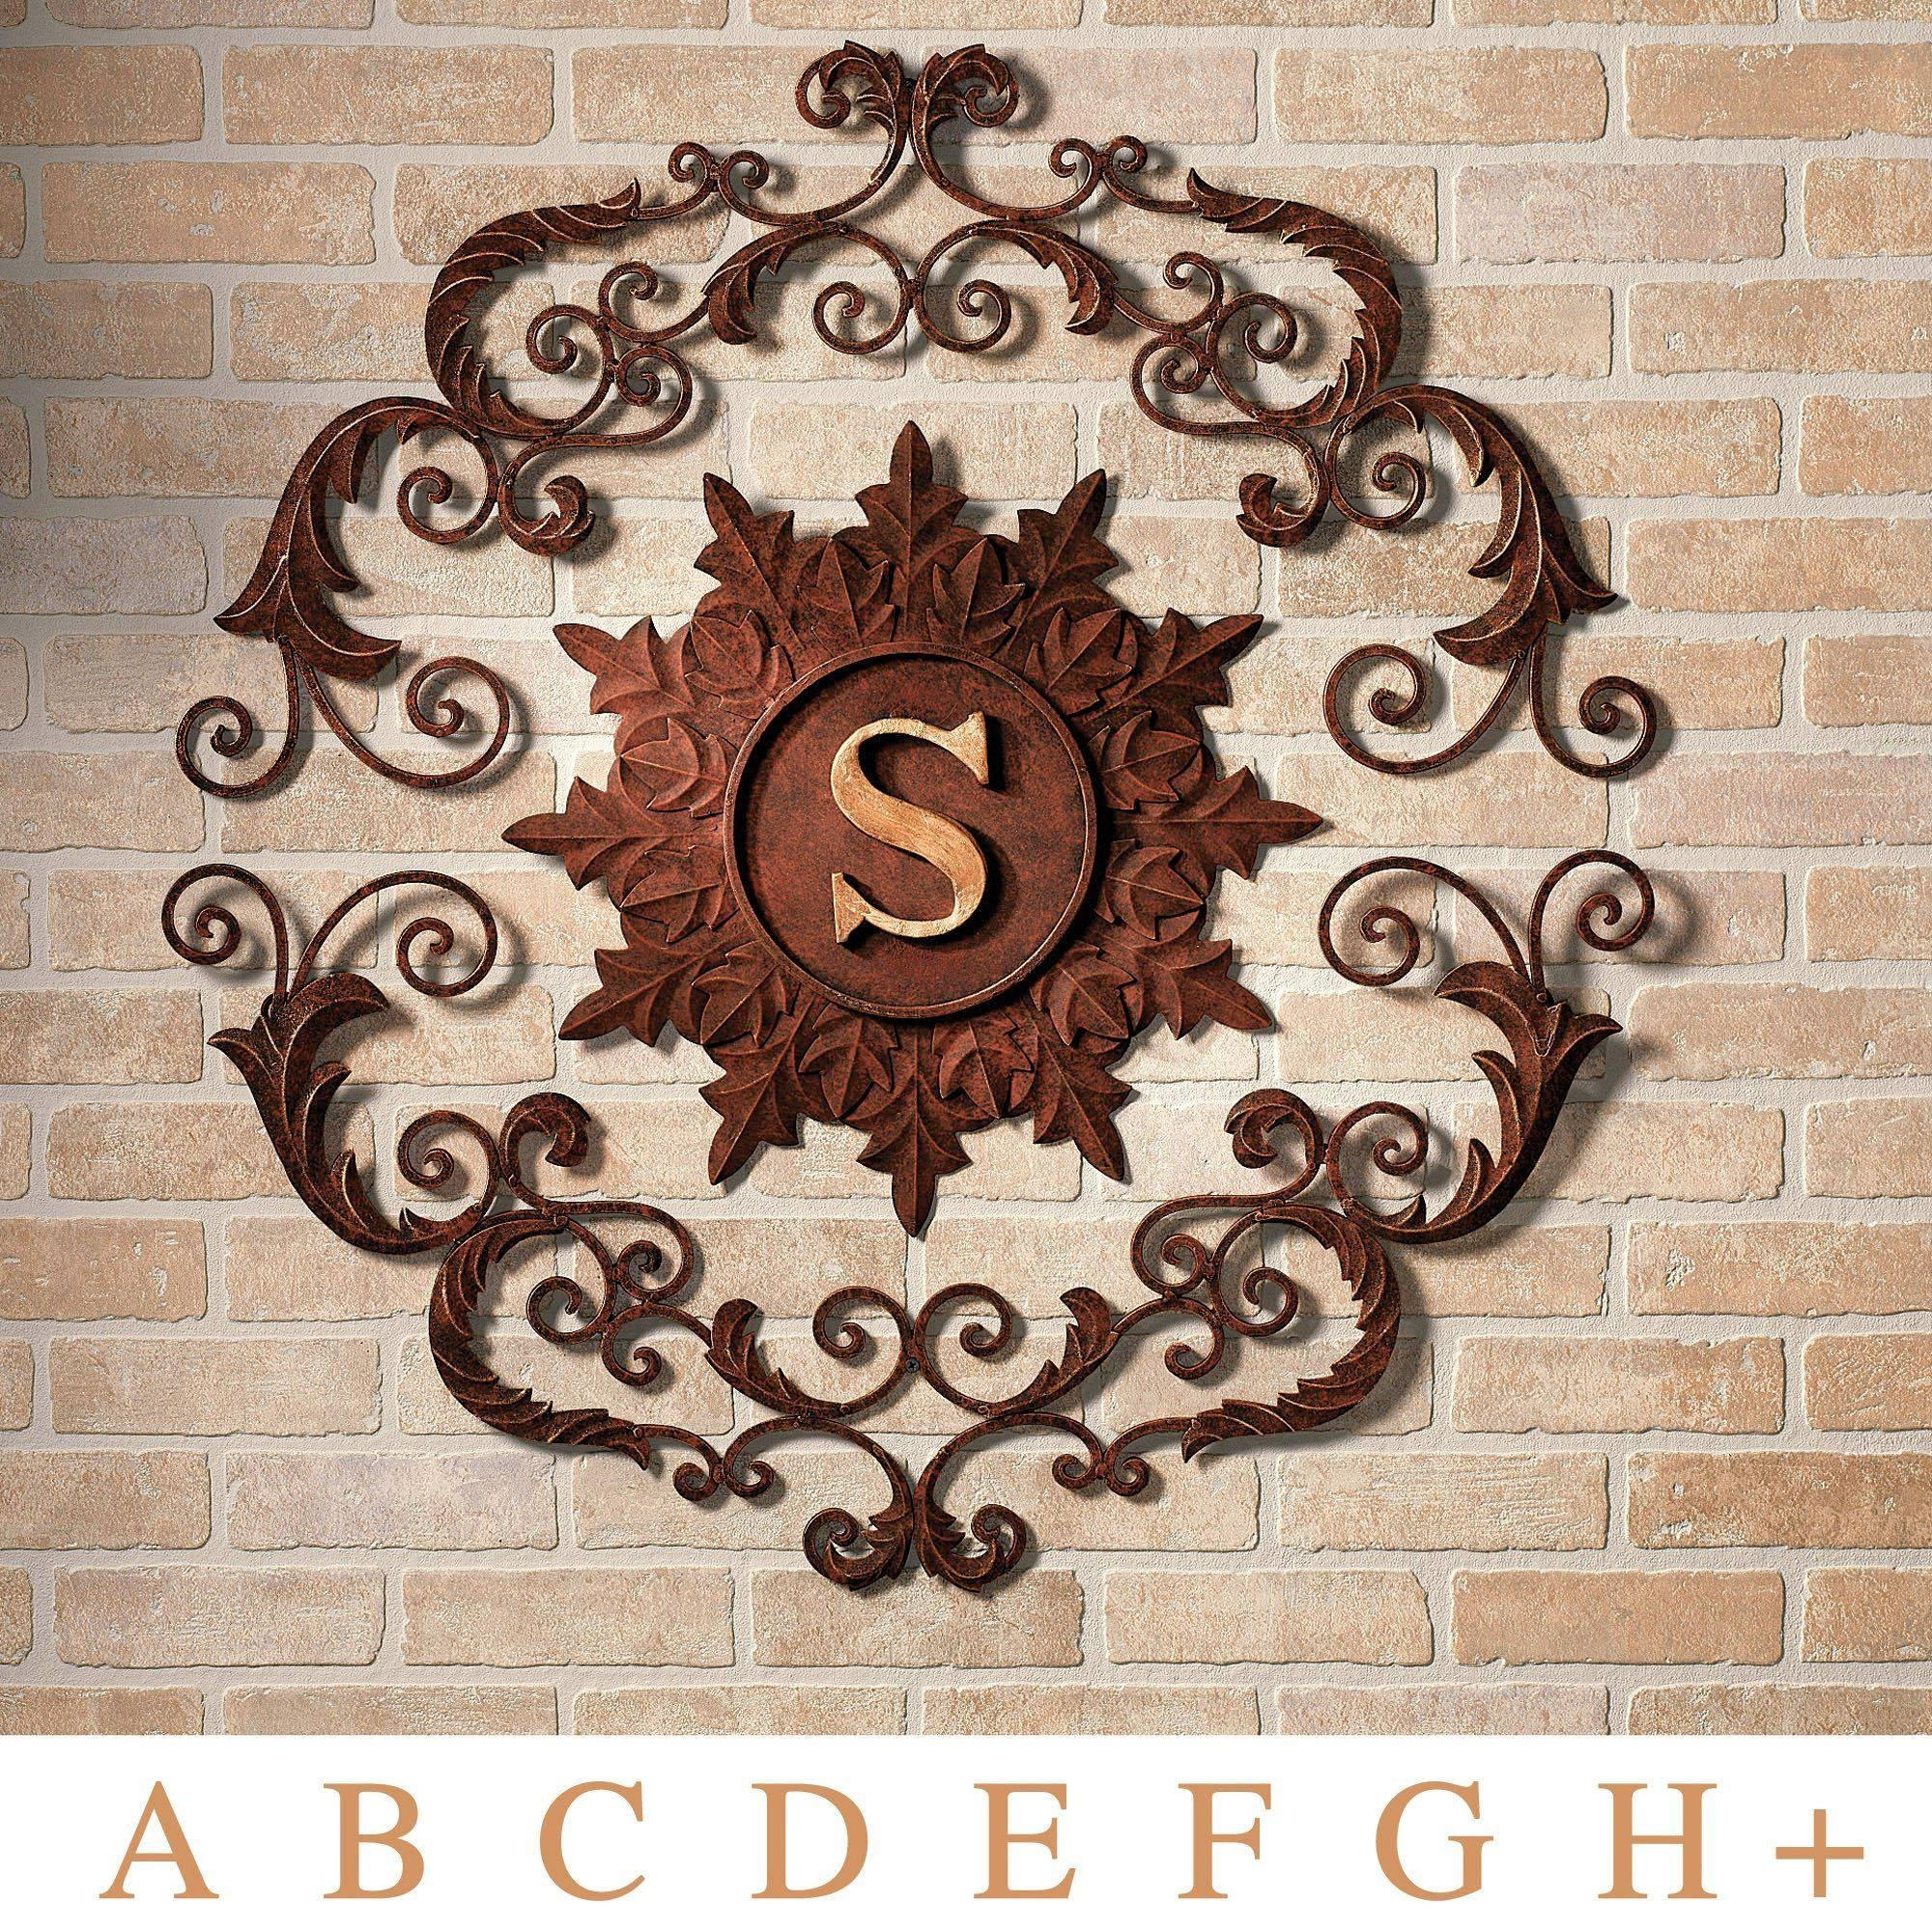 Kingston Monogram Metal Wall Grille With Most Recent Exterior Metal Wall Art (Gallery 3 of 20)